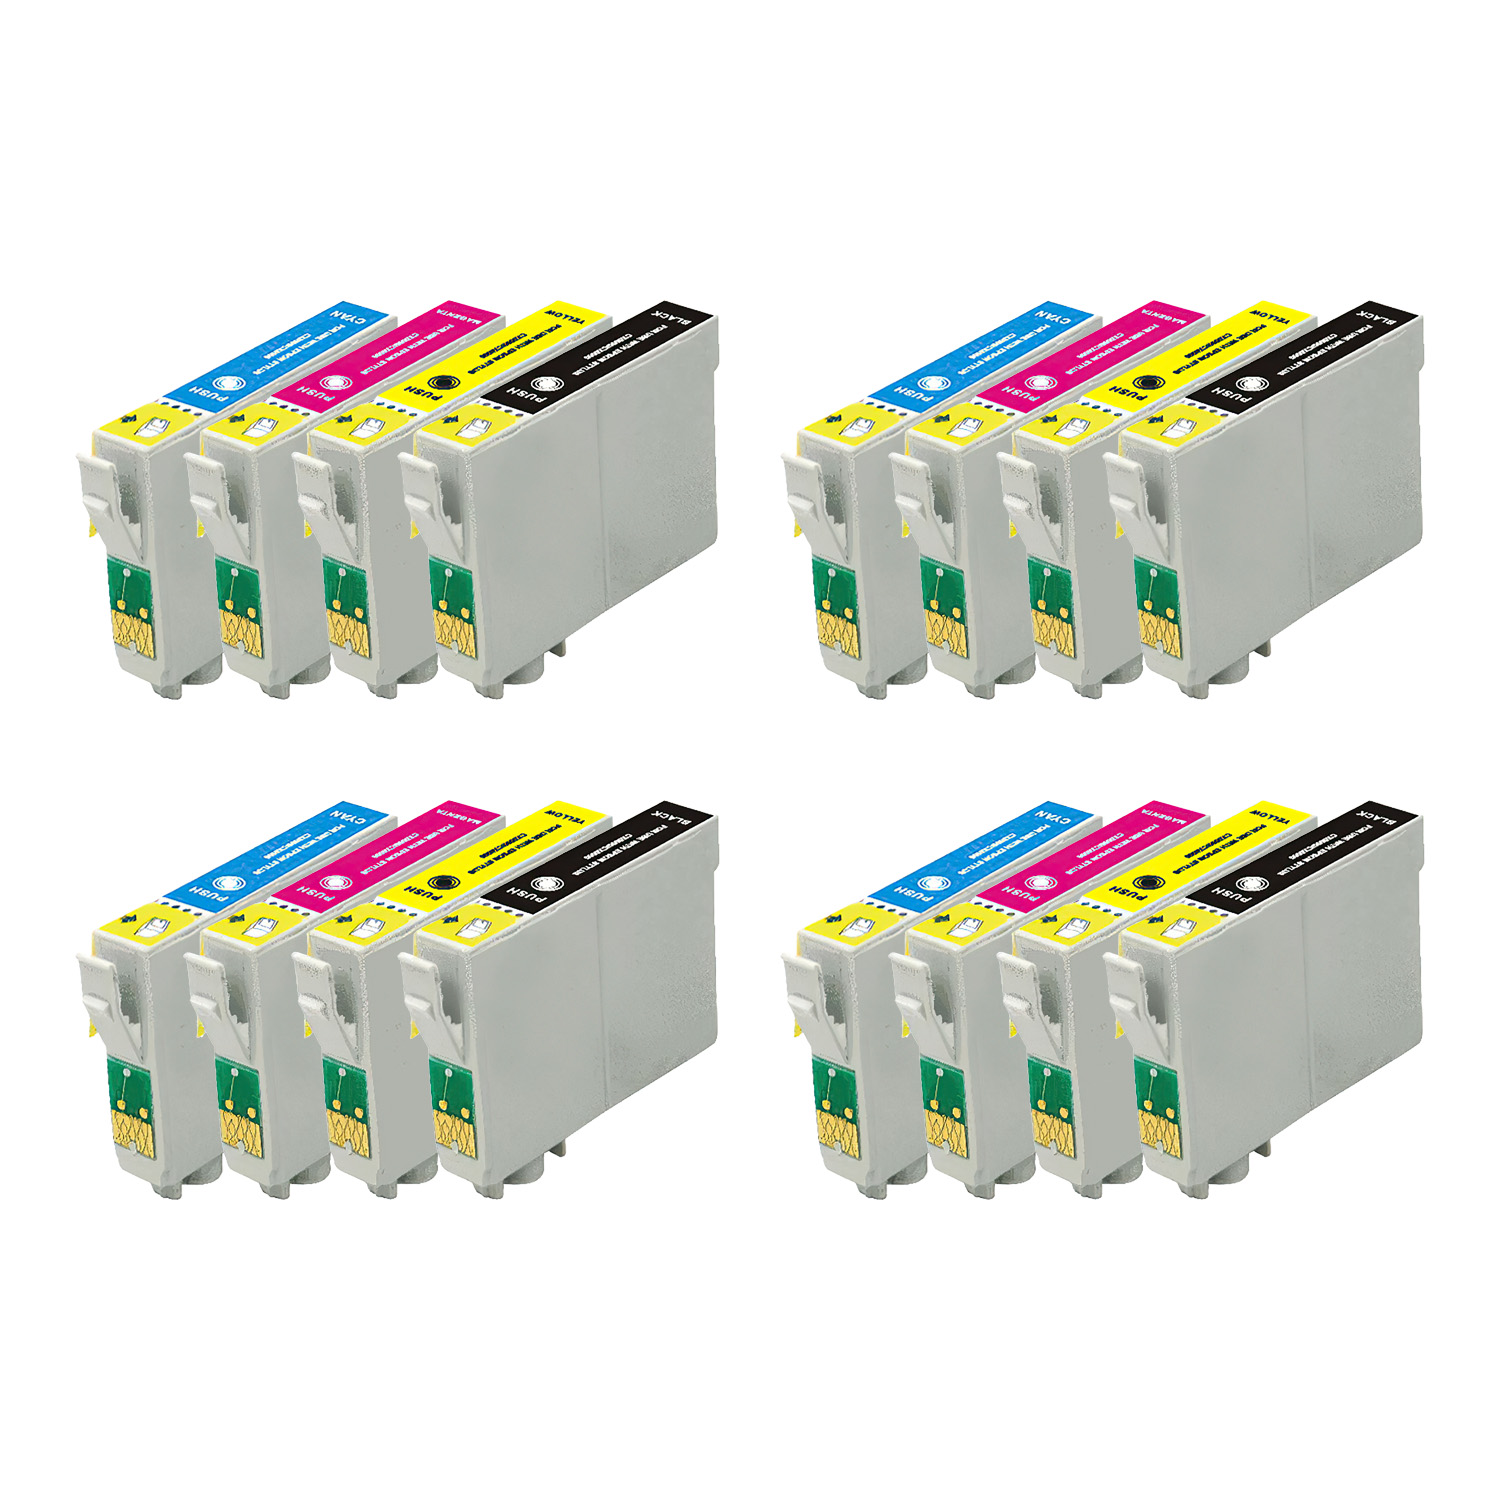 Remanufactured Epson 68 Inkjet High Capacity Pack - 16 Cartridges